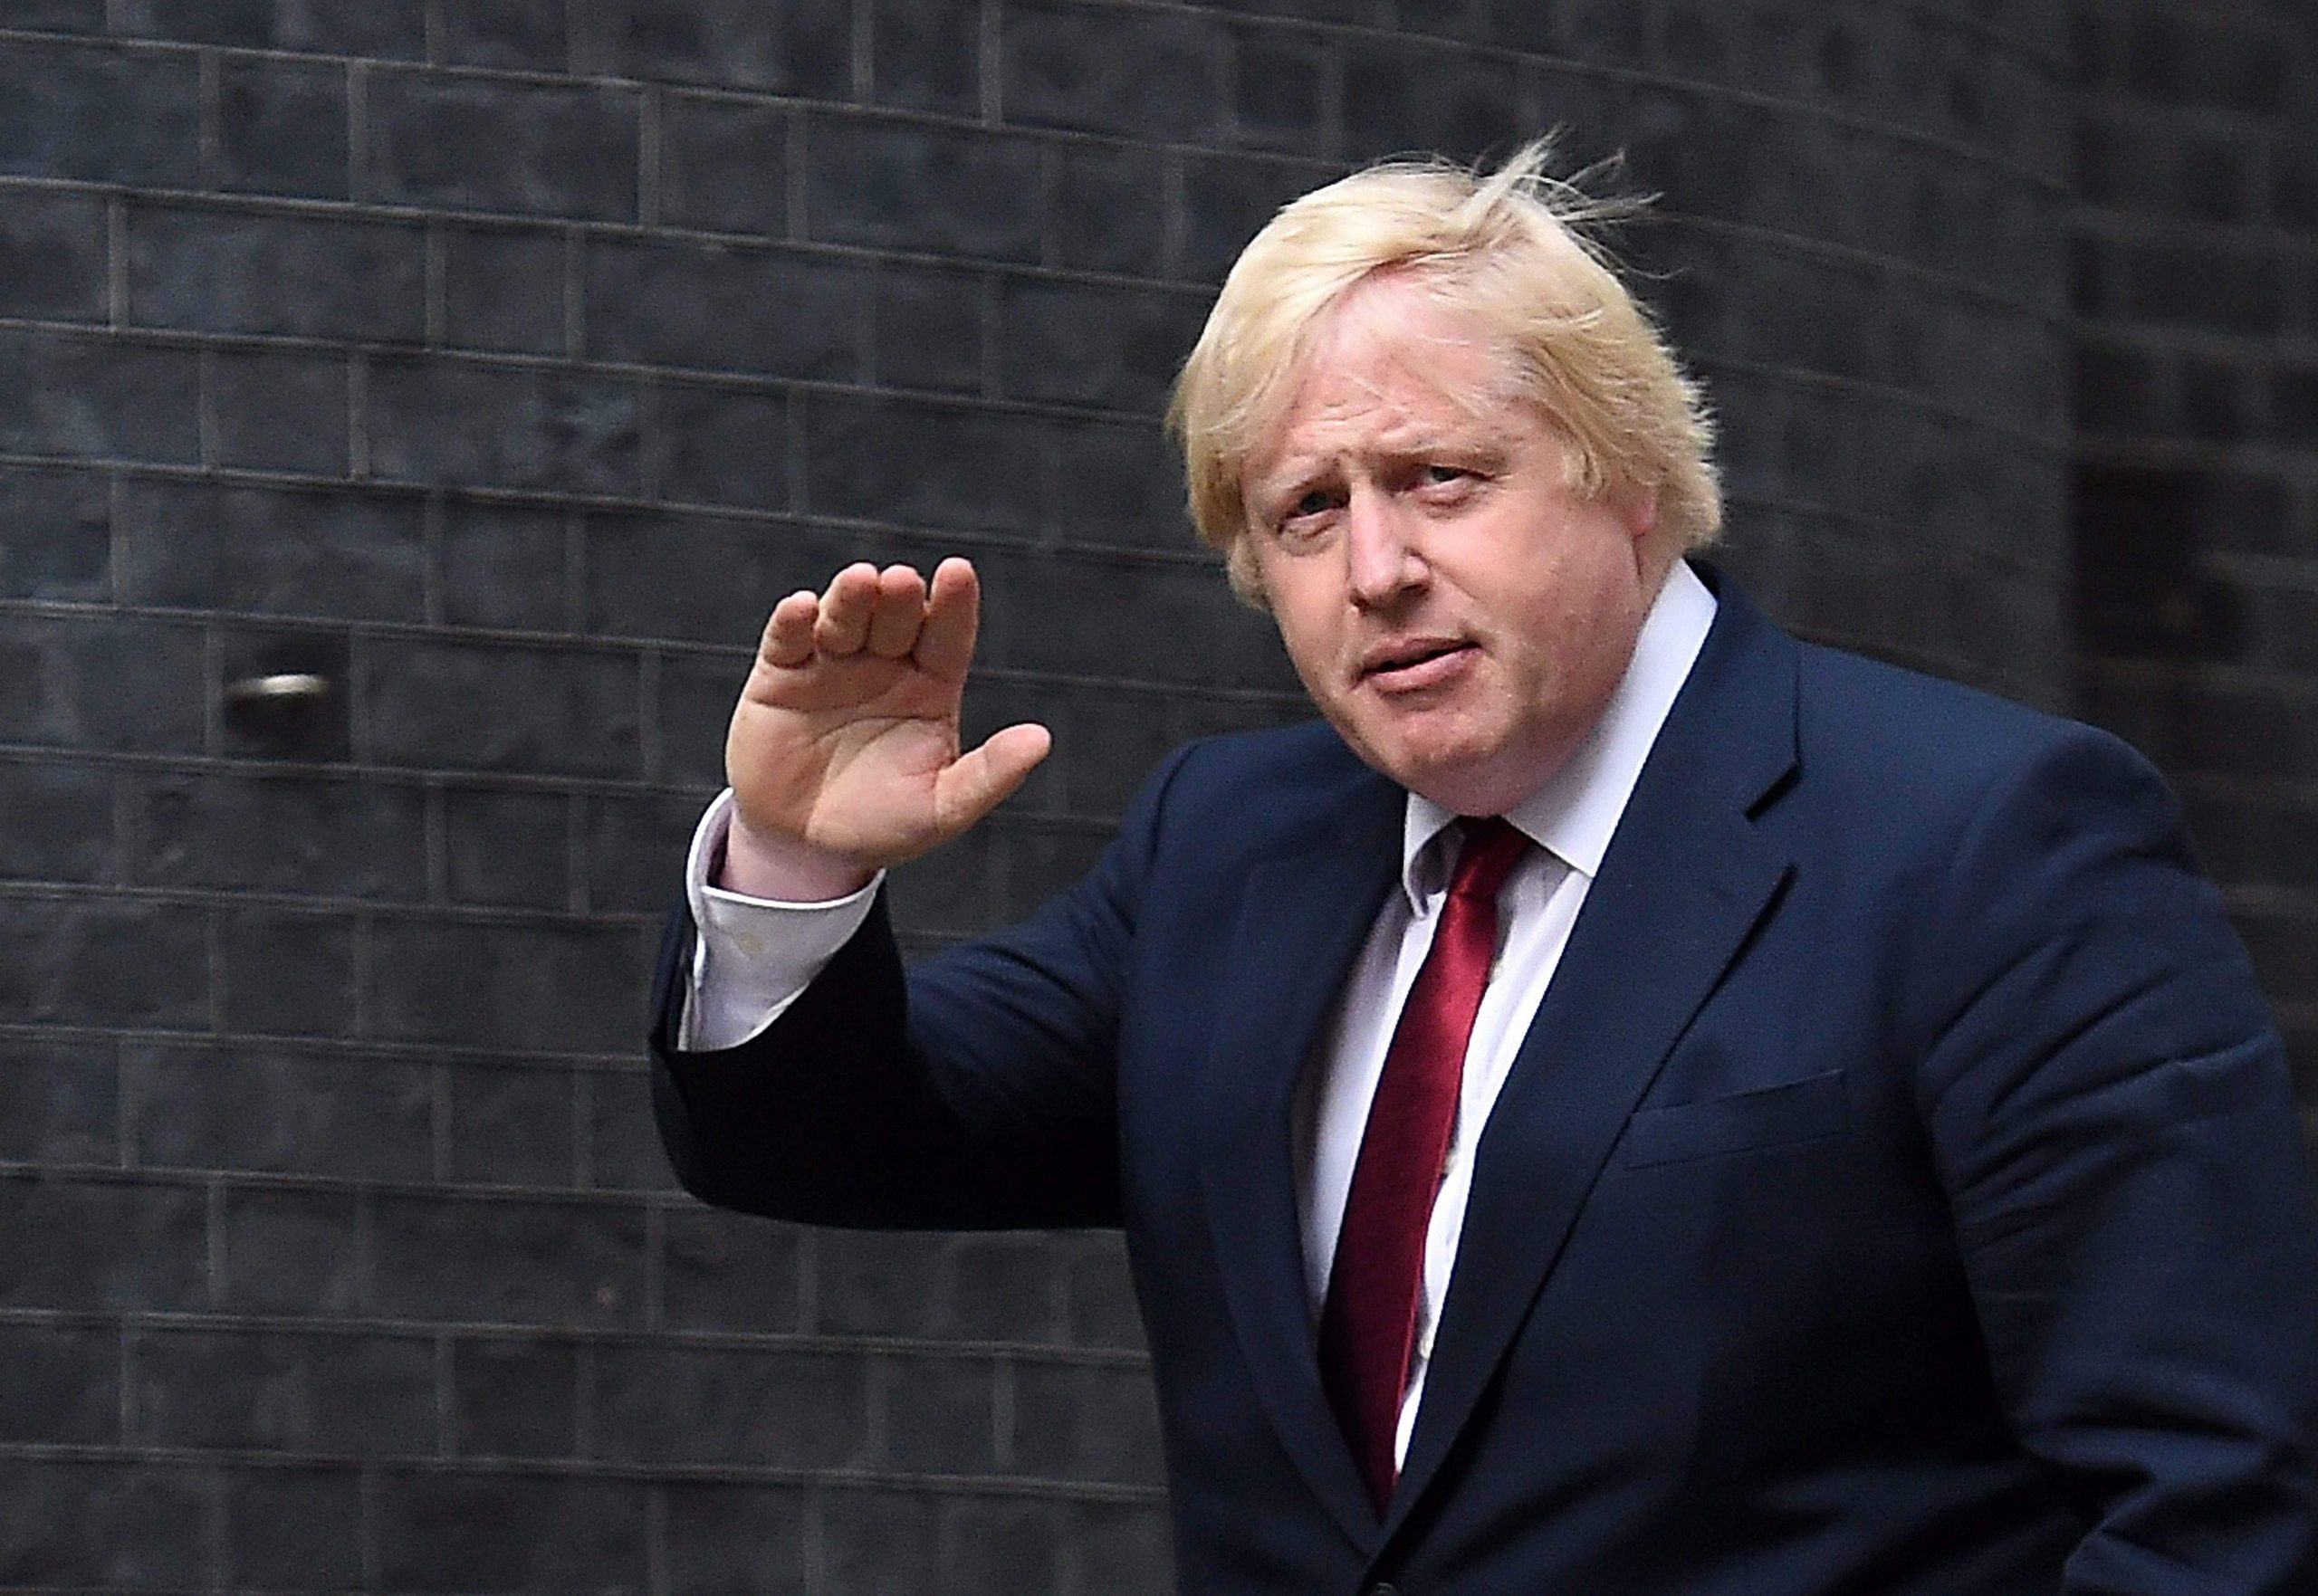 The British are back in the bars and shops and have Boris Johnson cutting his hair